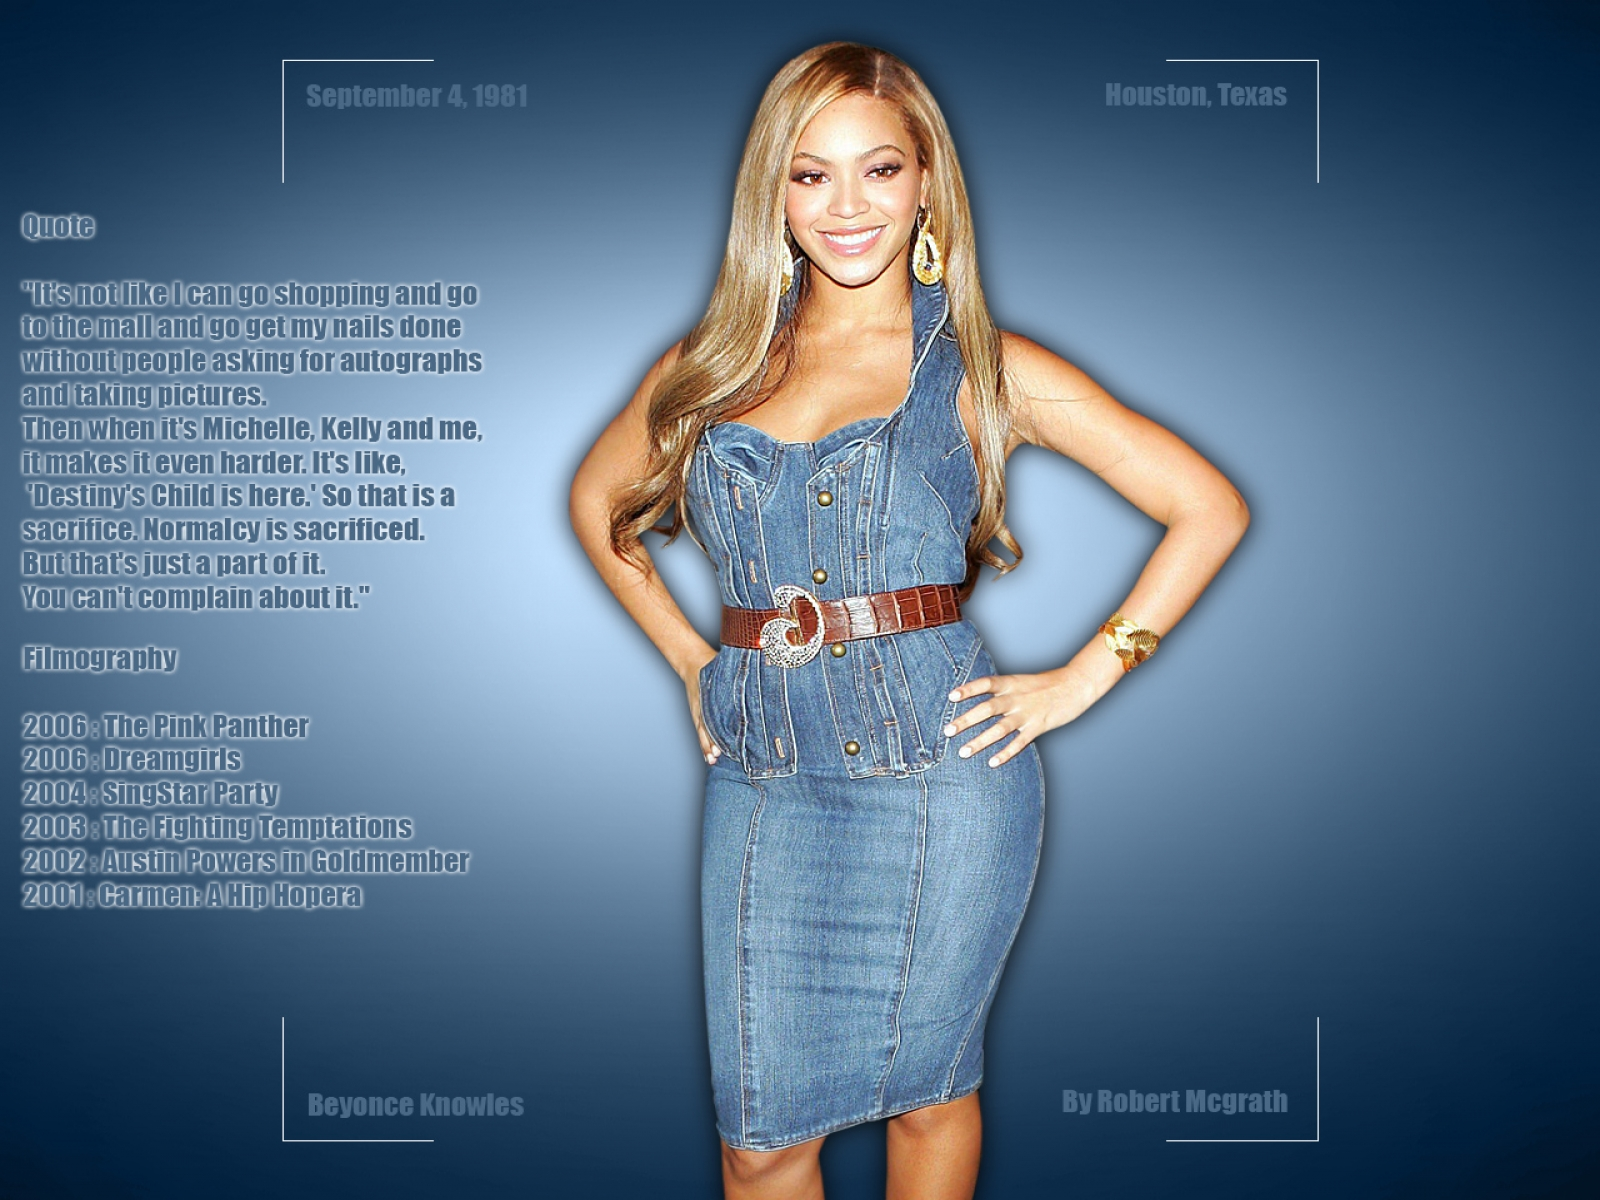 Beyonce Knowles's quote #2